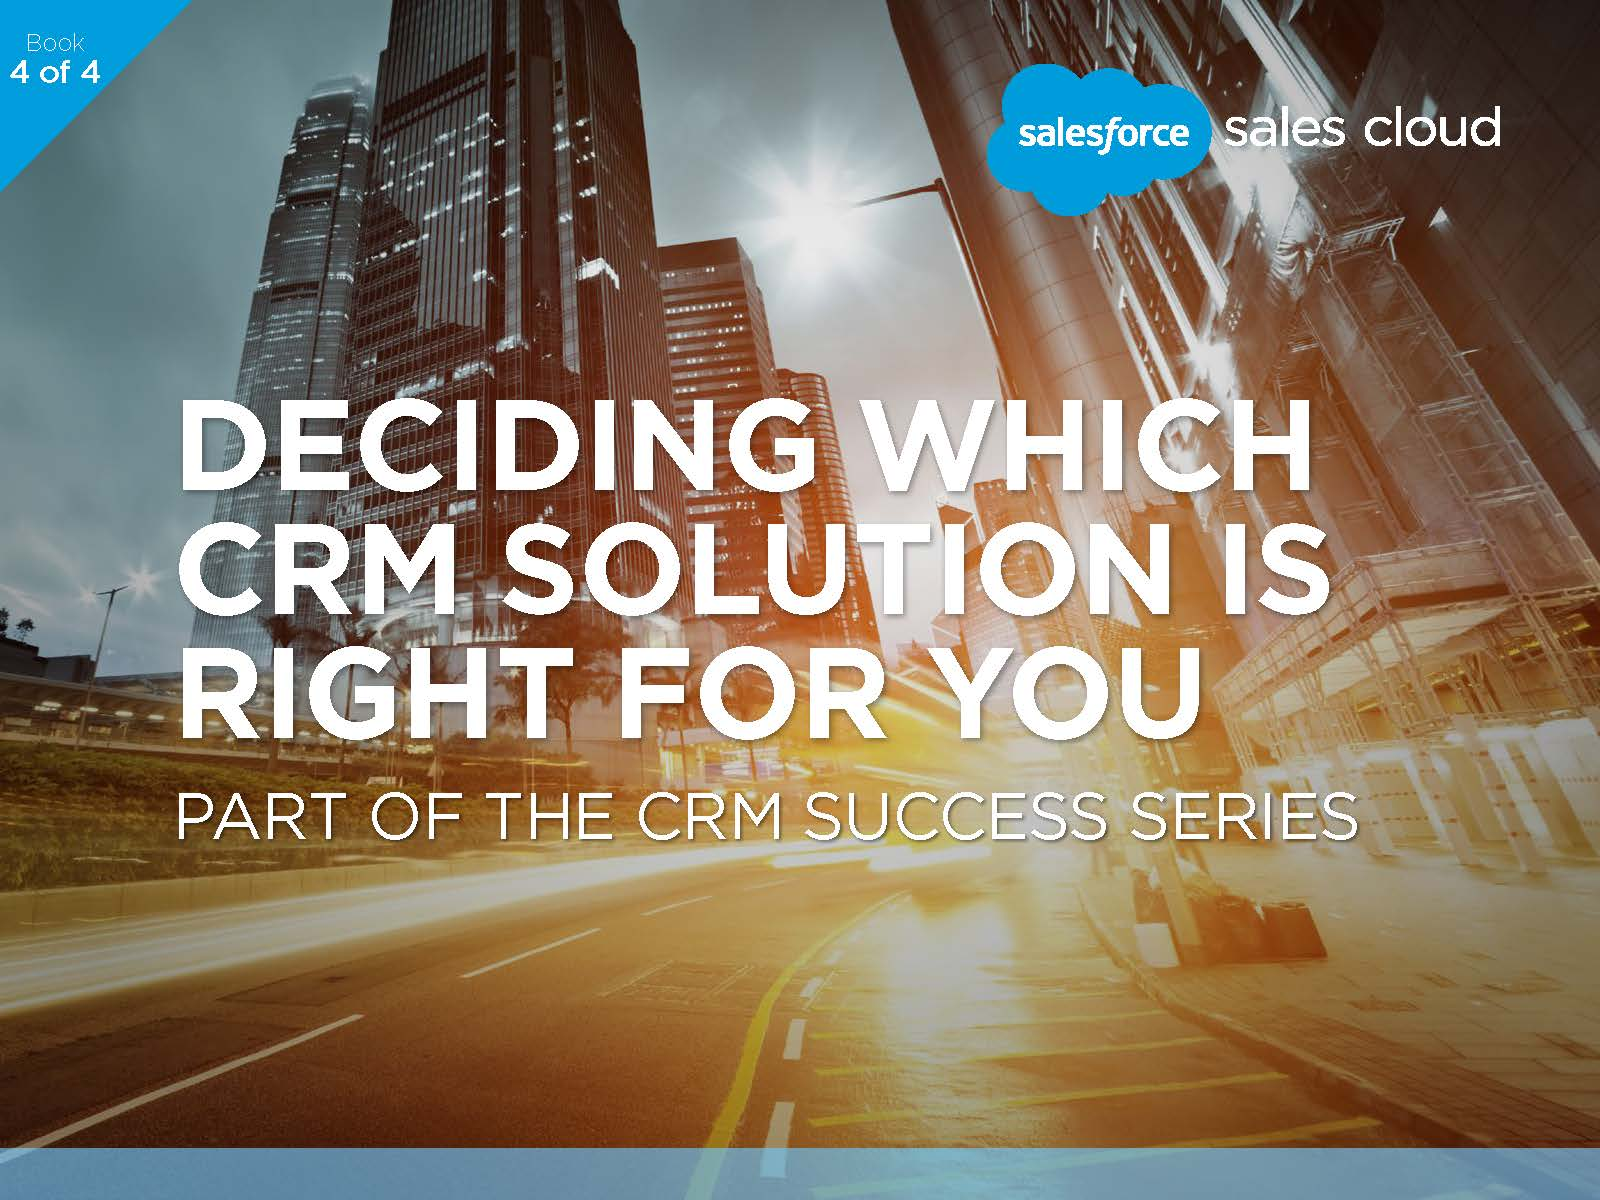 SFDC integrated solutions